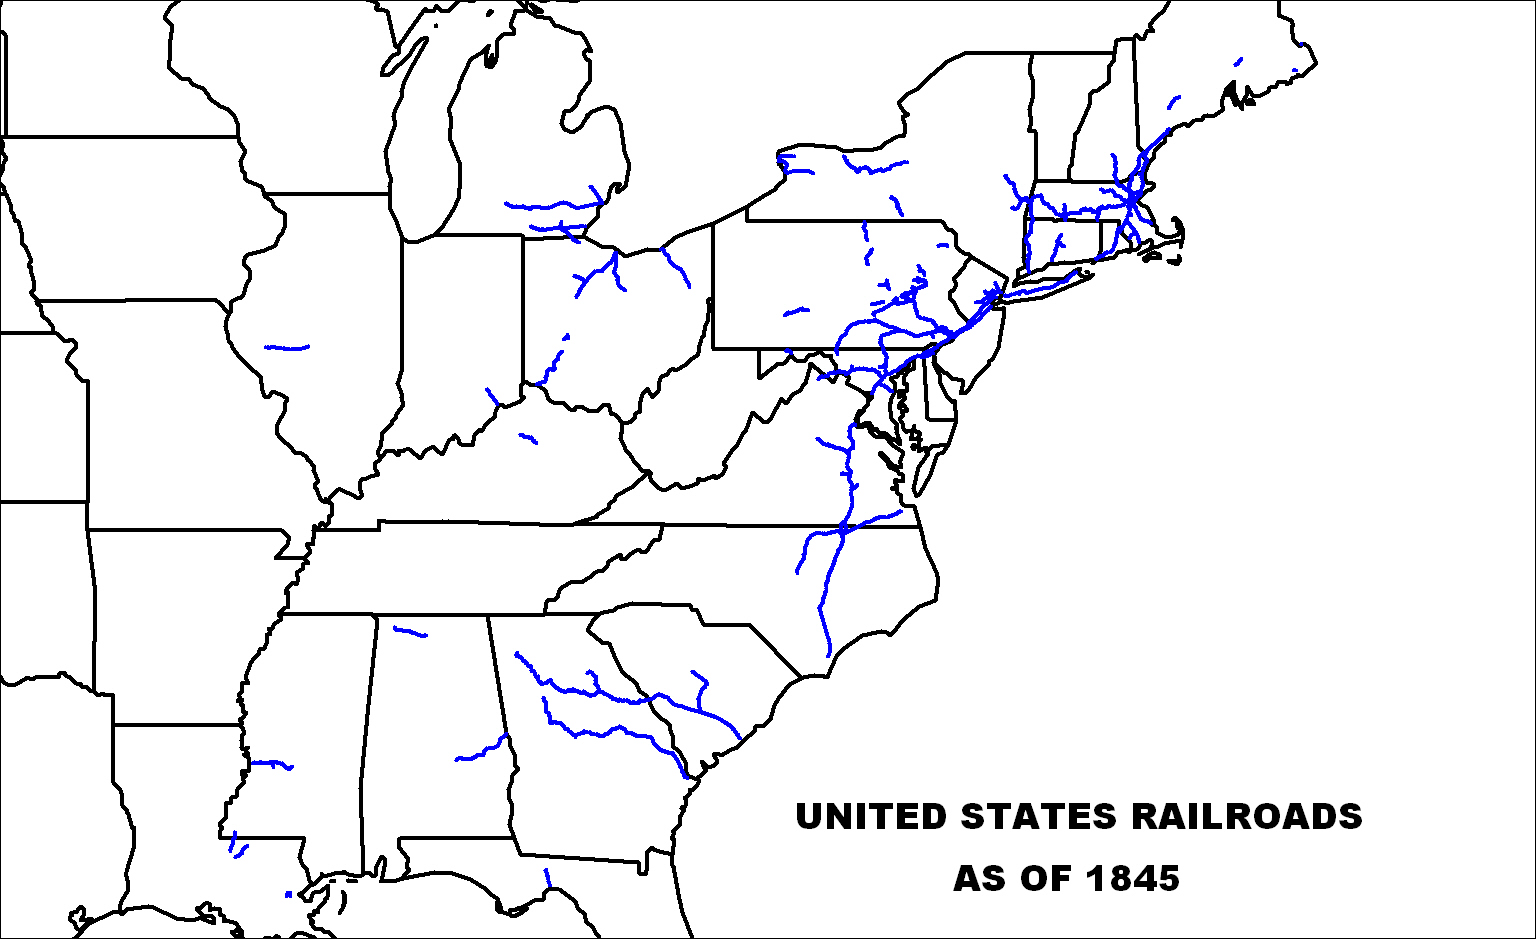 US Railroads Map as of 1845